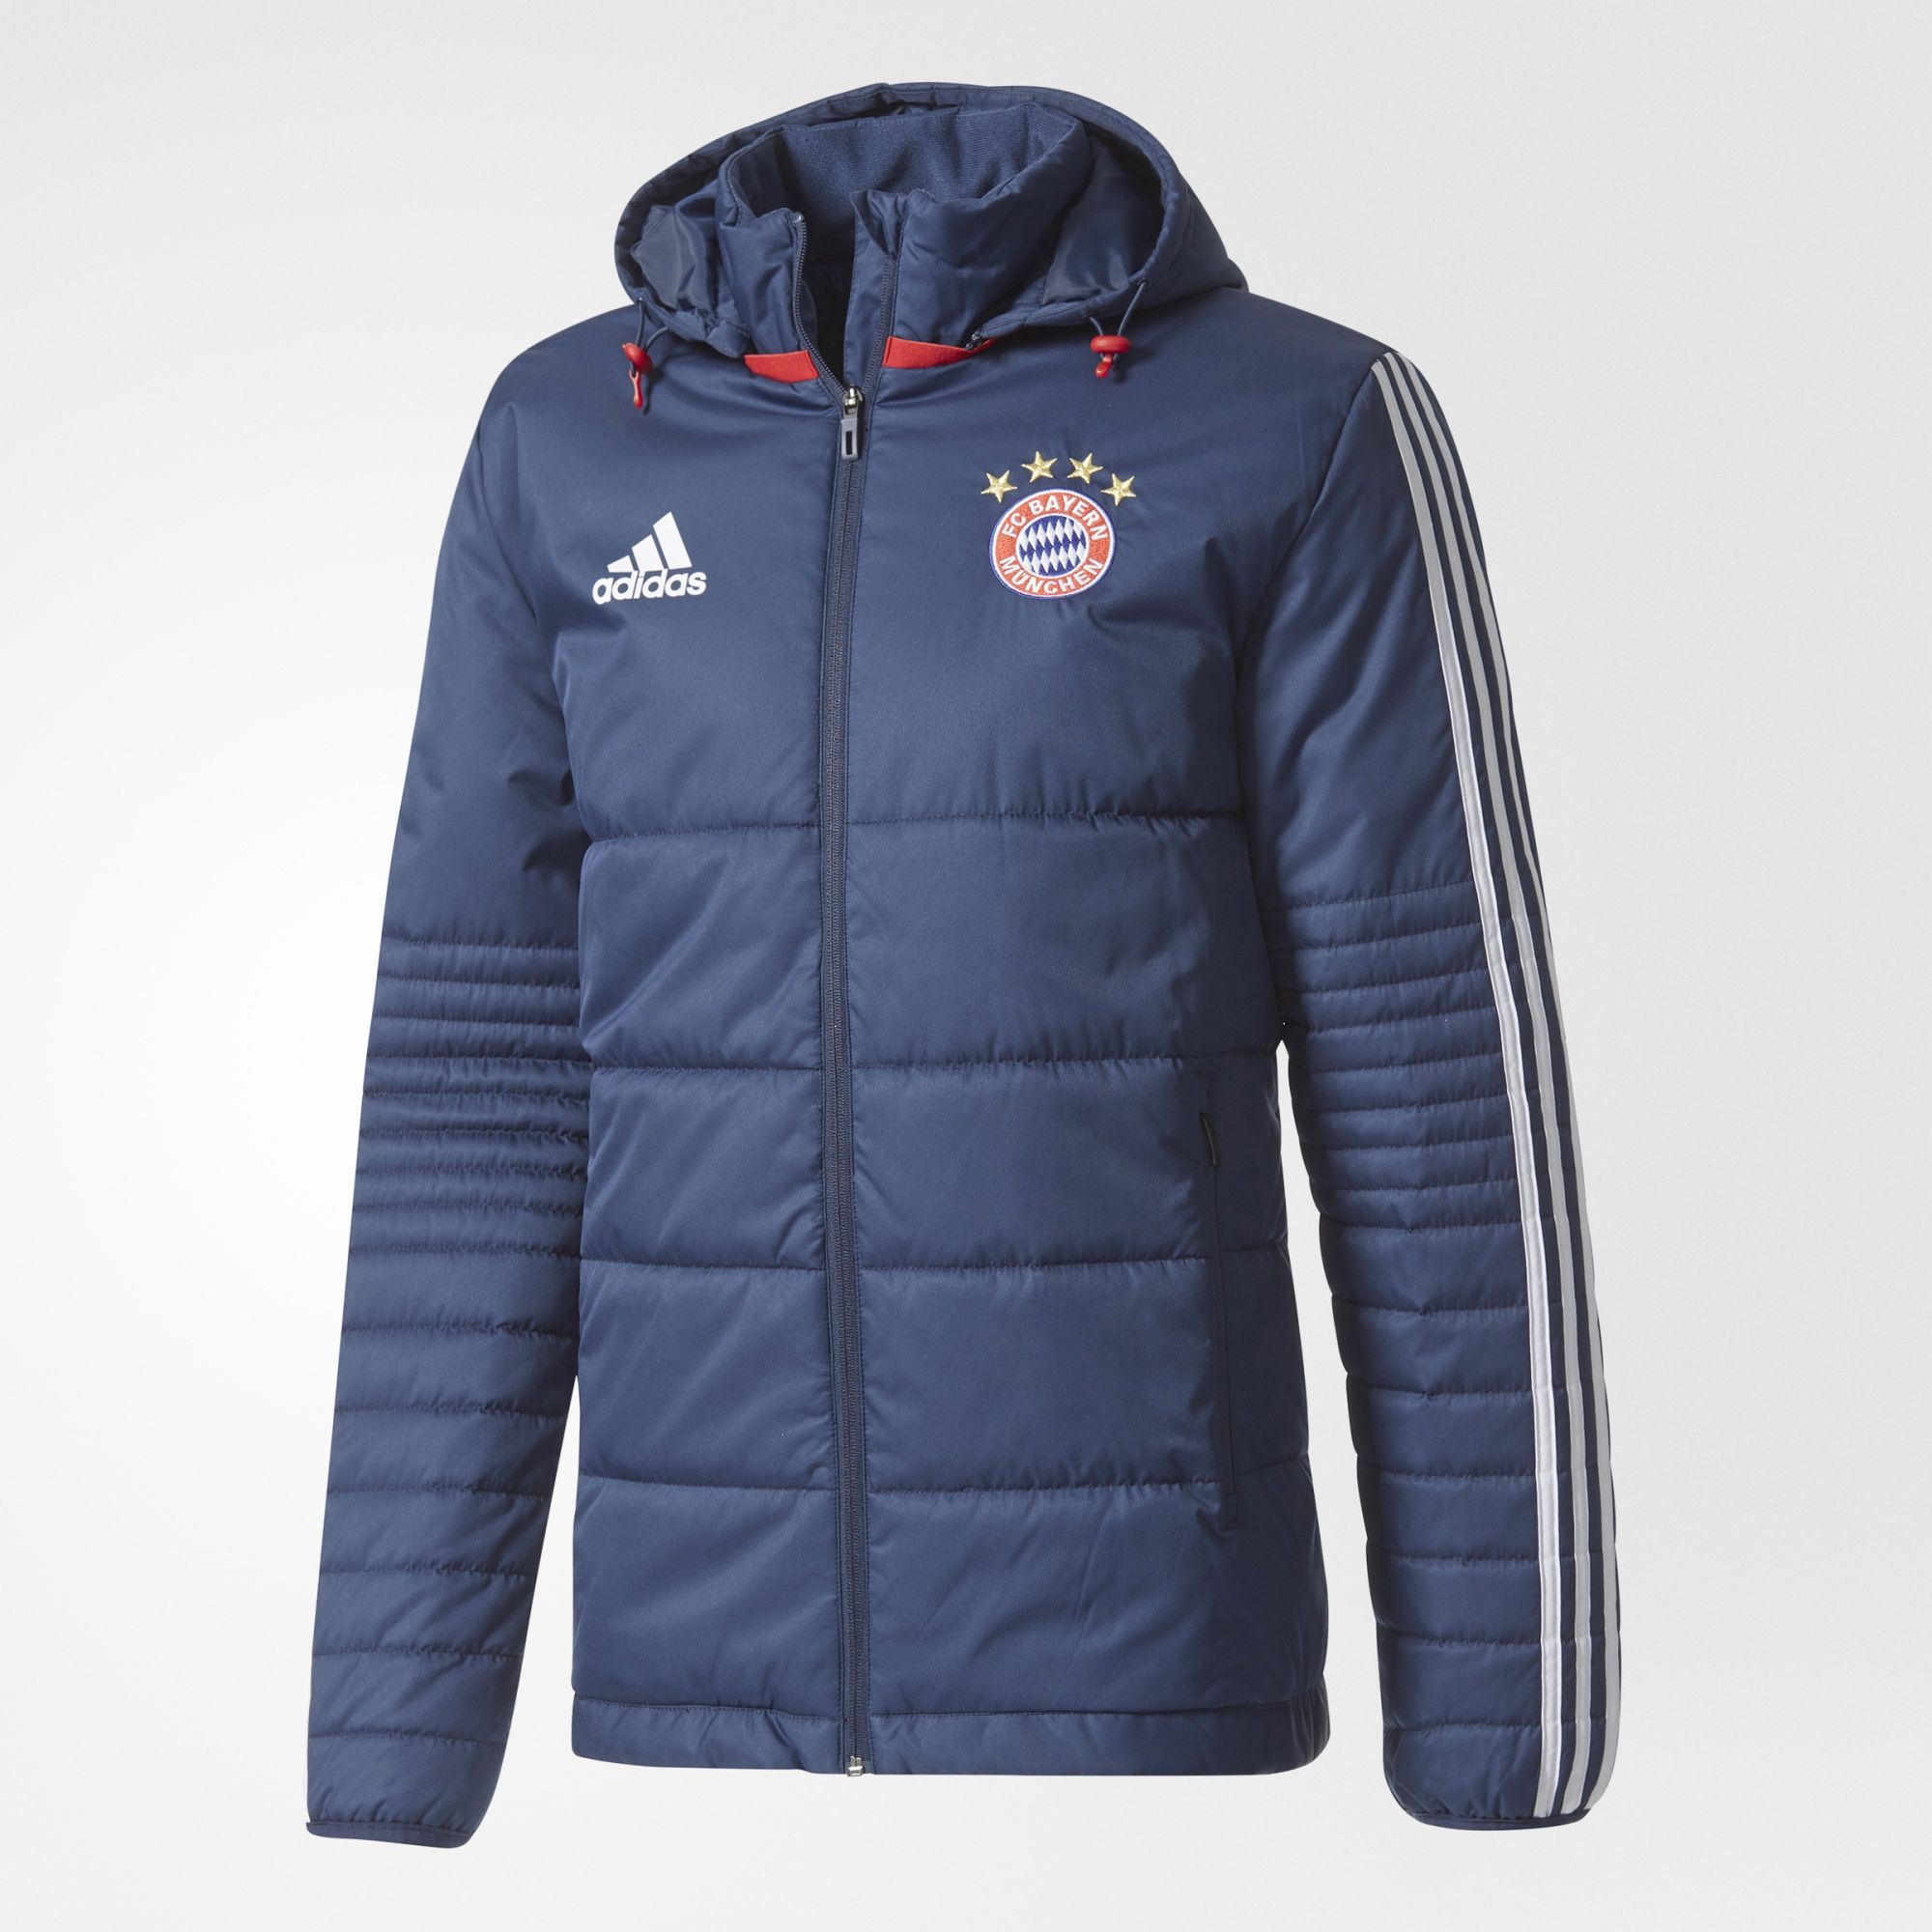 adidas sportswear winter